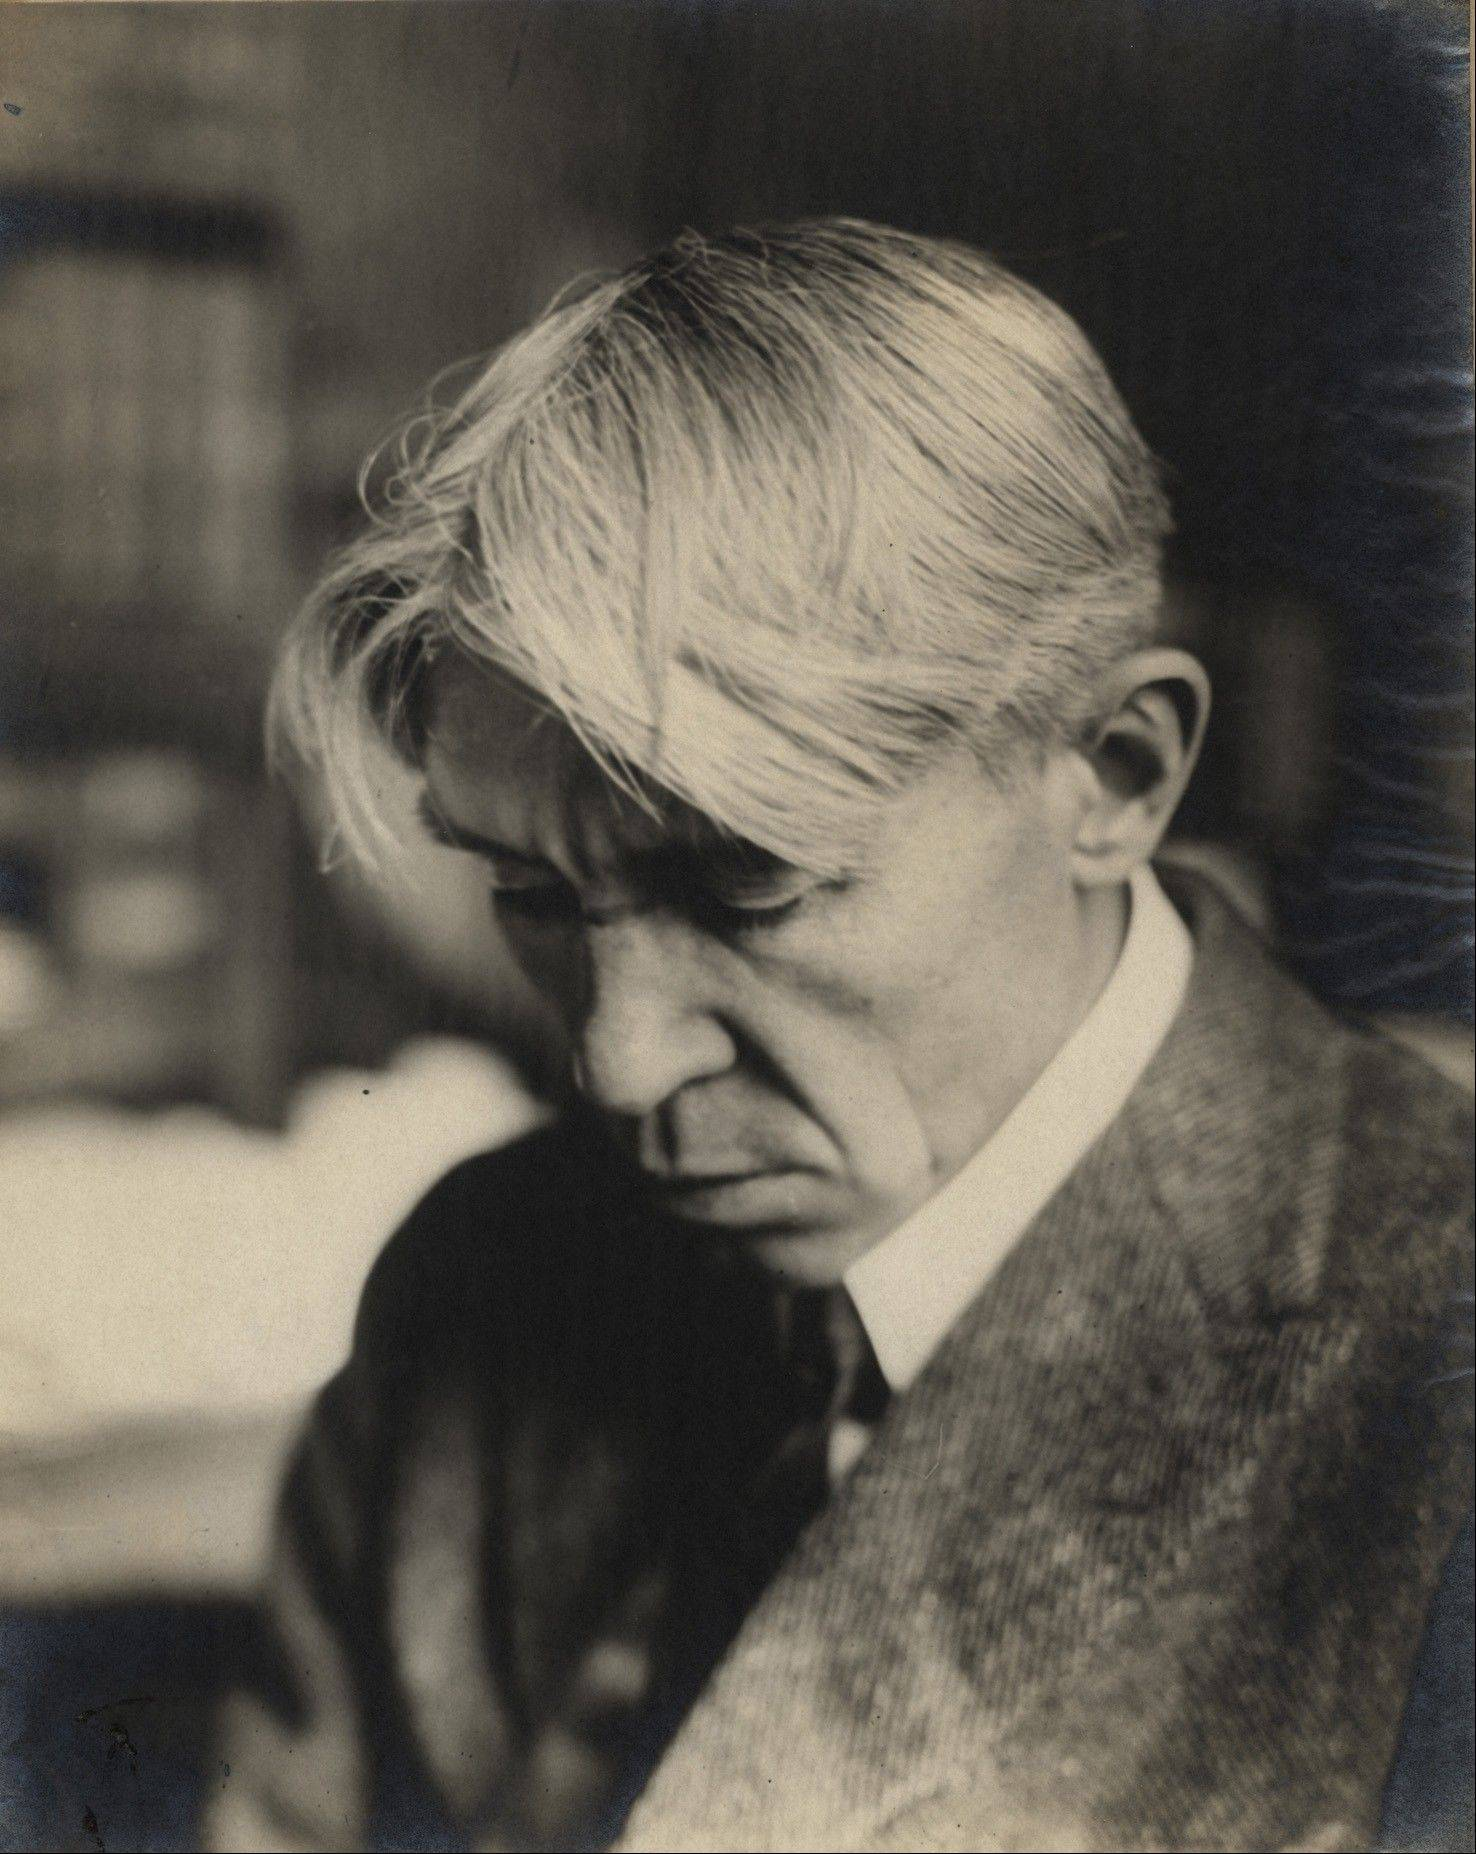 grass carl sandburg+essay Read carl sandburg free essay and over 88,000 other research documents carl sandburg carl sandburg carl sandburg was born in galesburg, illinois on january 6, 1878.